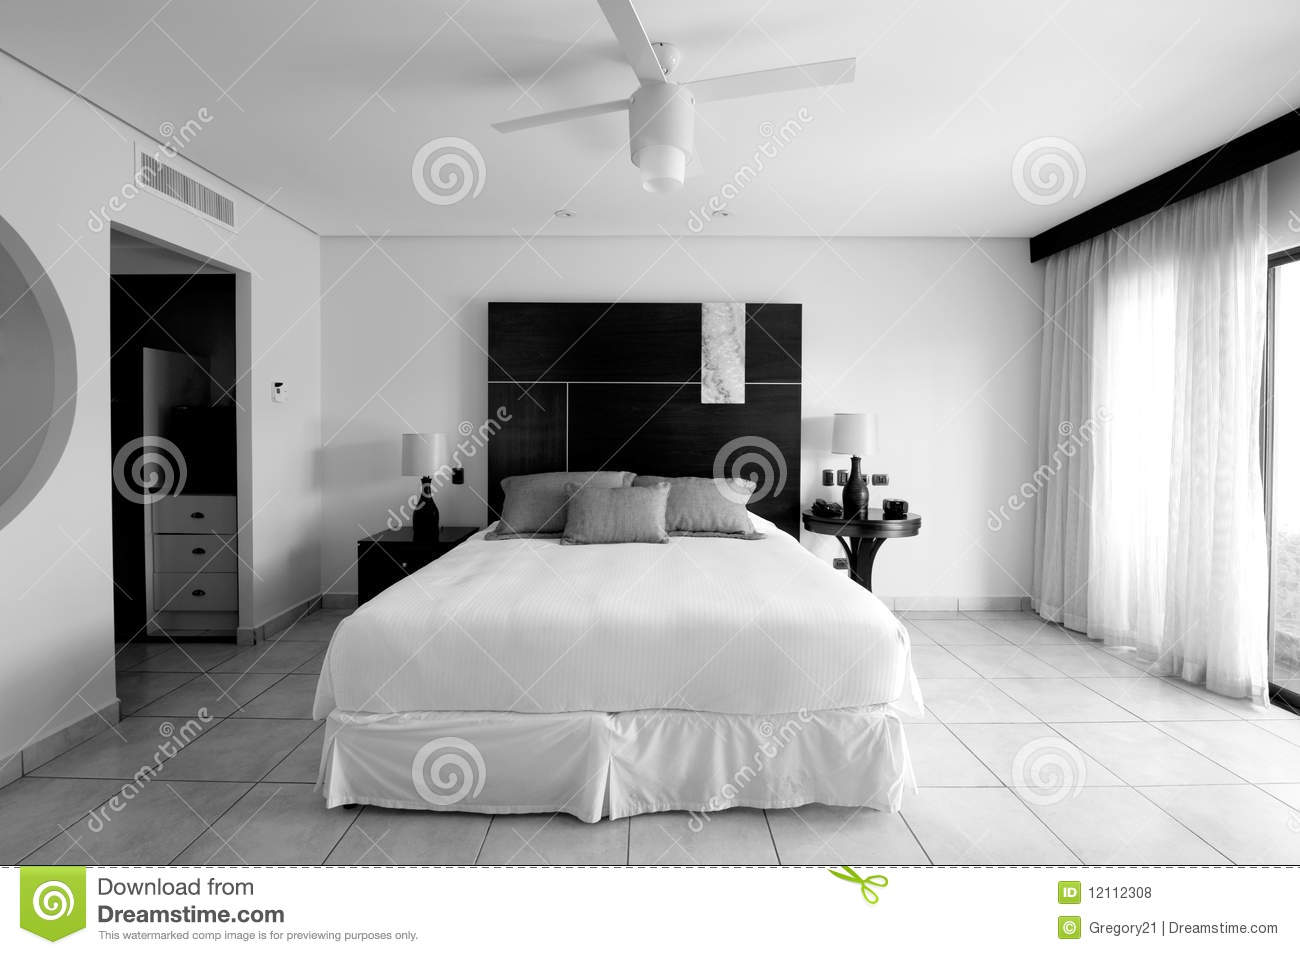 Black Bedroom Suite Hotel Resort Bedroom Suite In Black And White Stock Photo Image